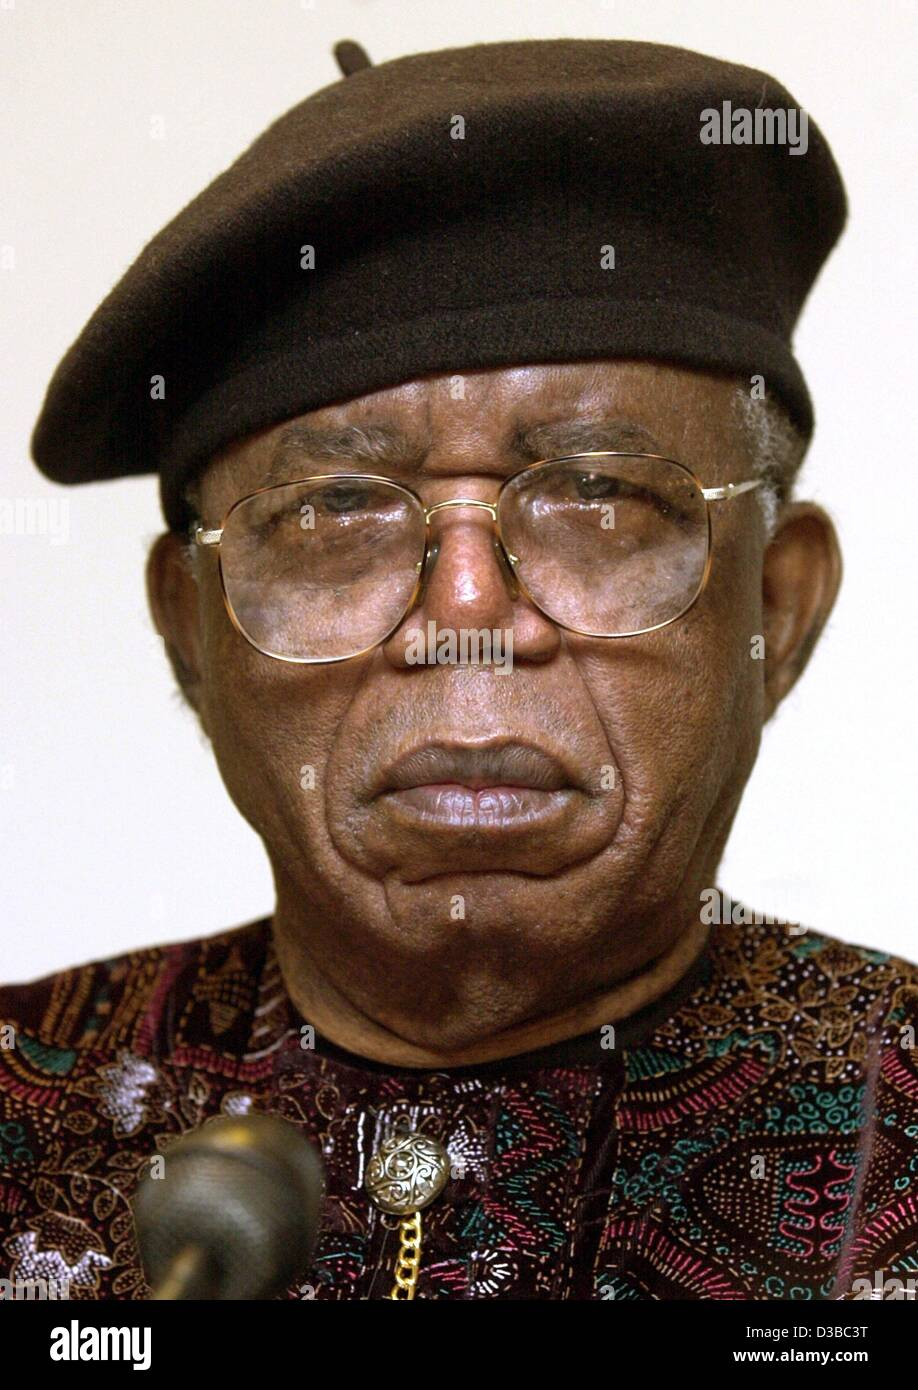 dpa ian author chinua achebe pictured in frankfurt 12 dpa ian author chinua achebe pictured in frankfurt 12 2002 achebe has published novels essays short stories and poems since the 1950s